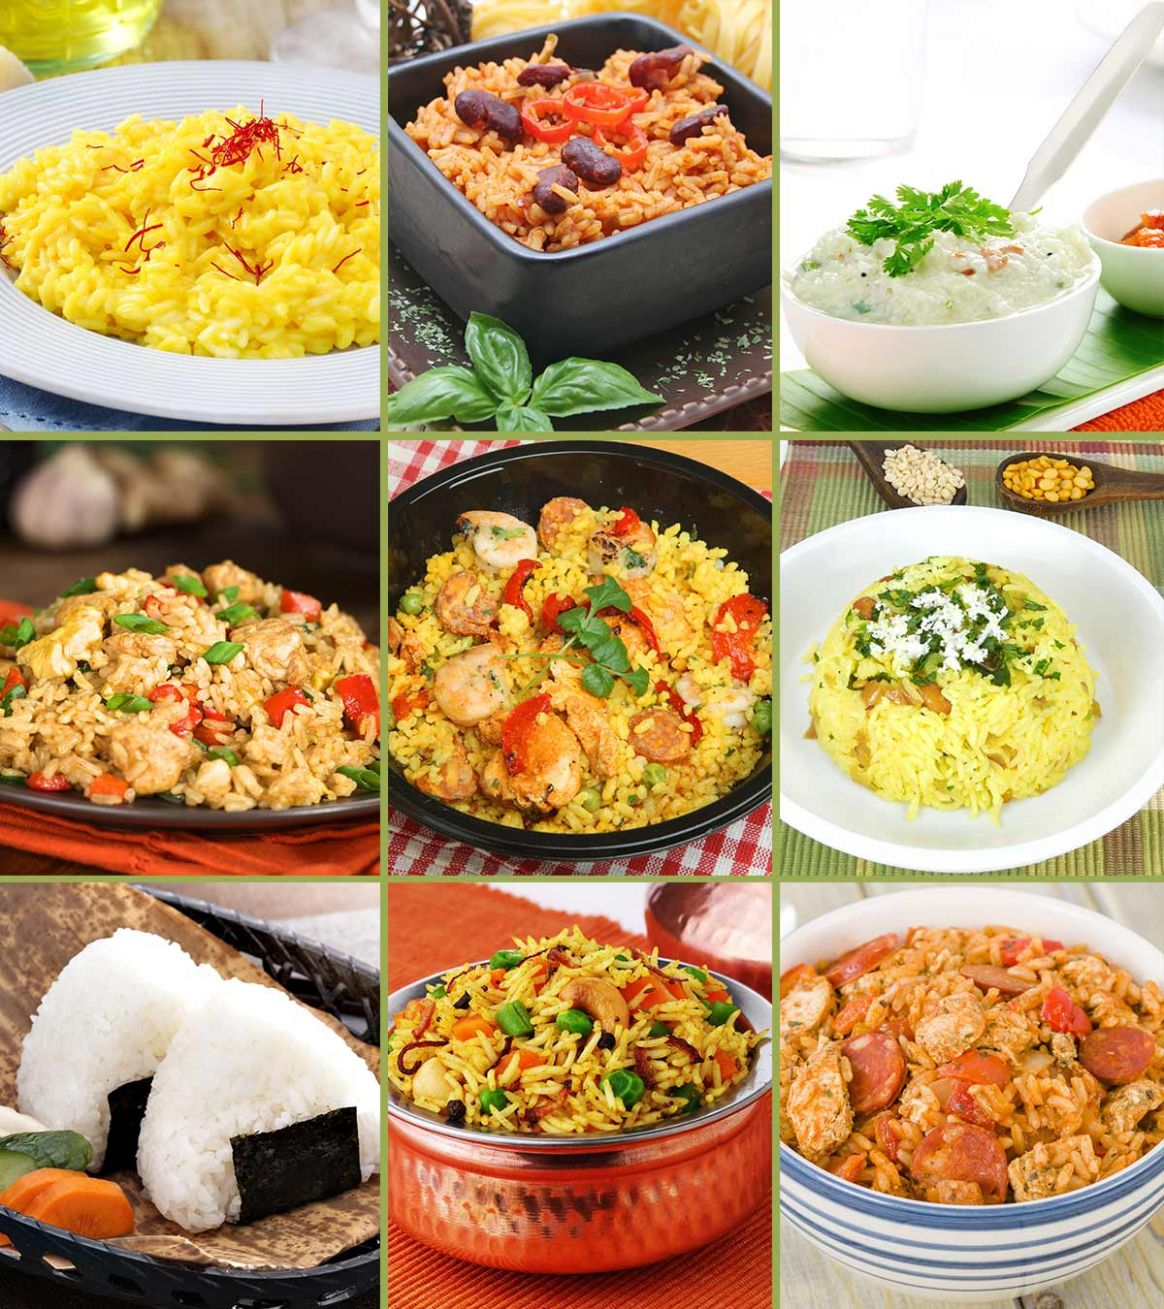 Top 11 Easy Rice Recipes For Kids - Rice Recipes Kid Friendly